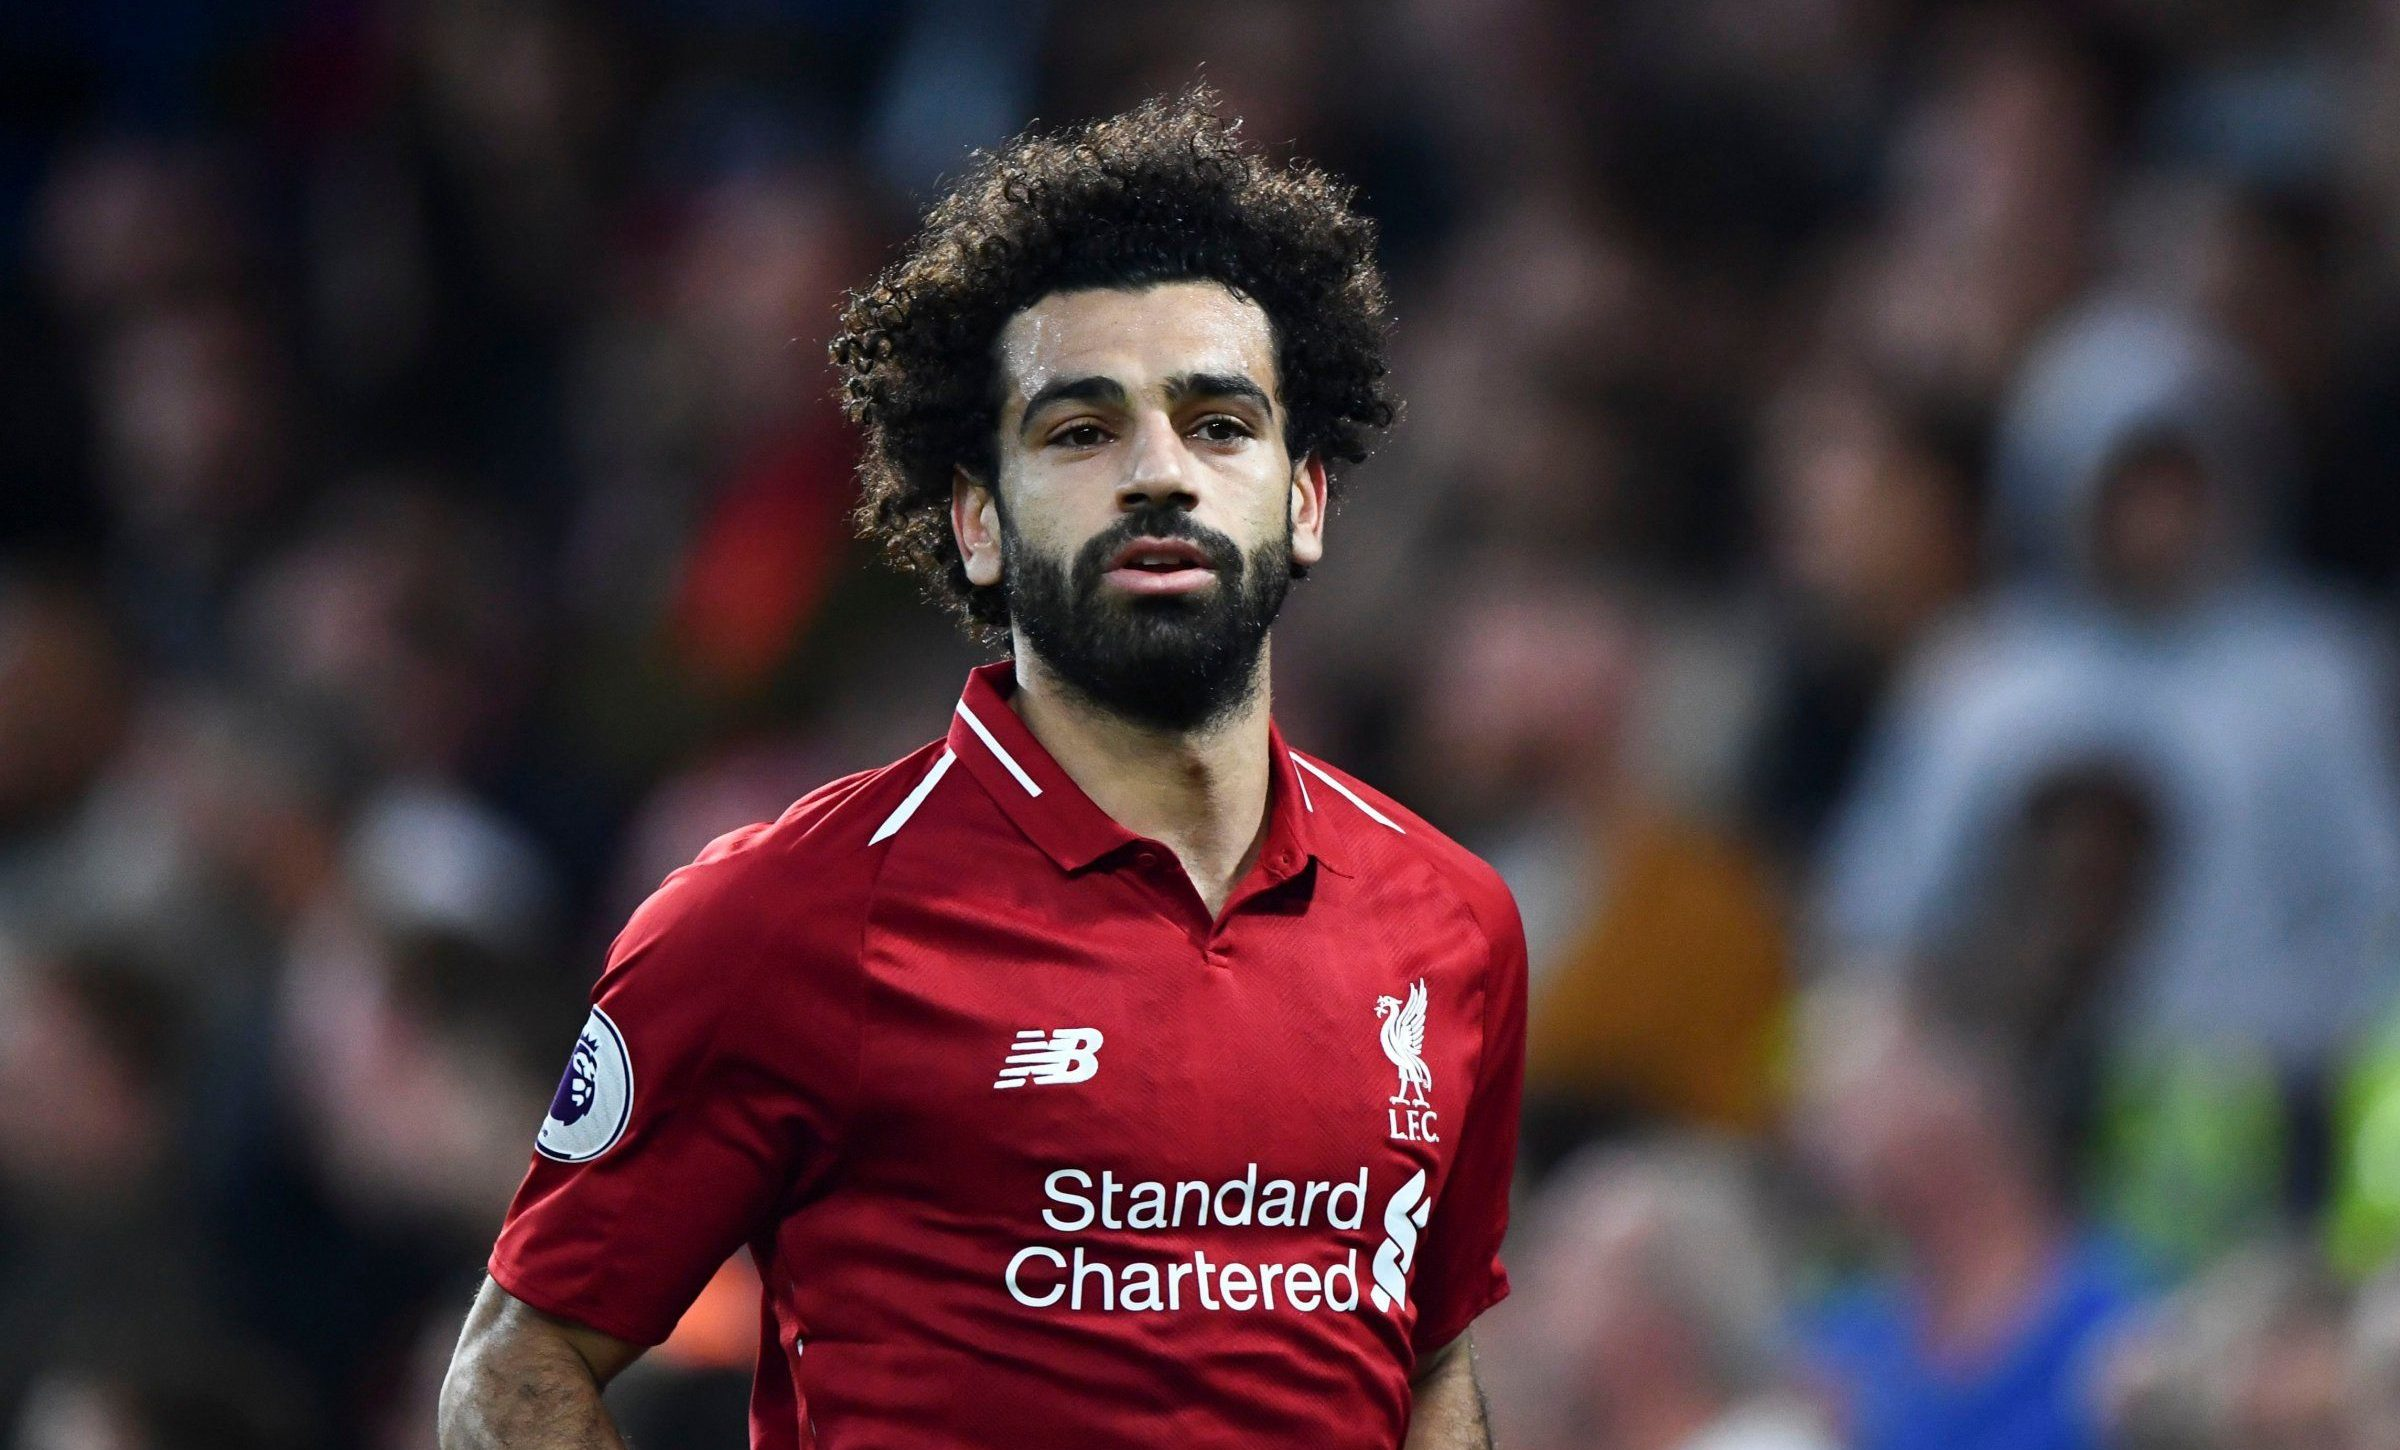 Jamie Carragher highlights the biggest problem Jurgen Klopp has with Mohamed Salah at Liverpool